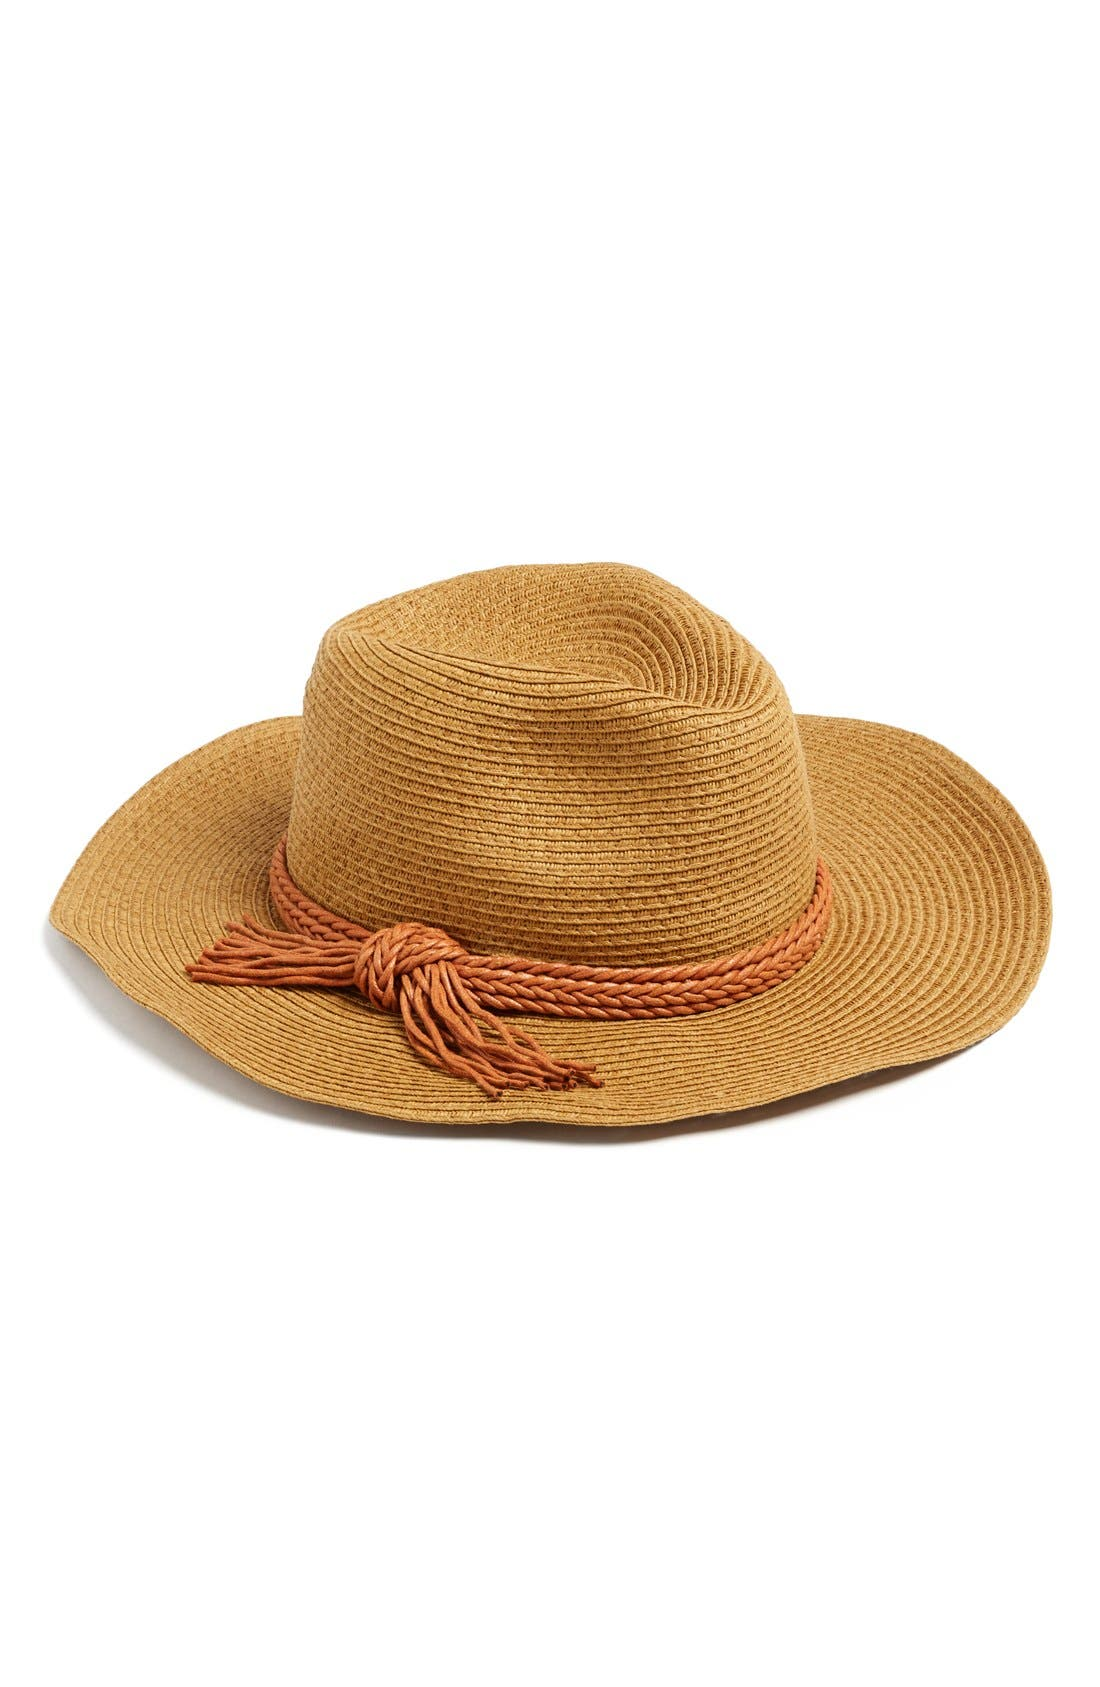 Alternate Image 1 Selected - David & Young Wide Brim Straw Hat (Juniors) (Online Only)